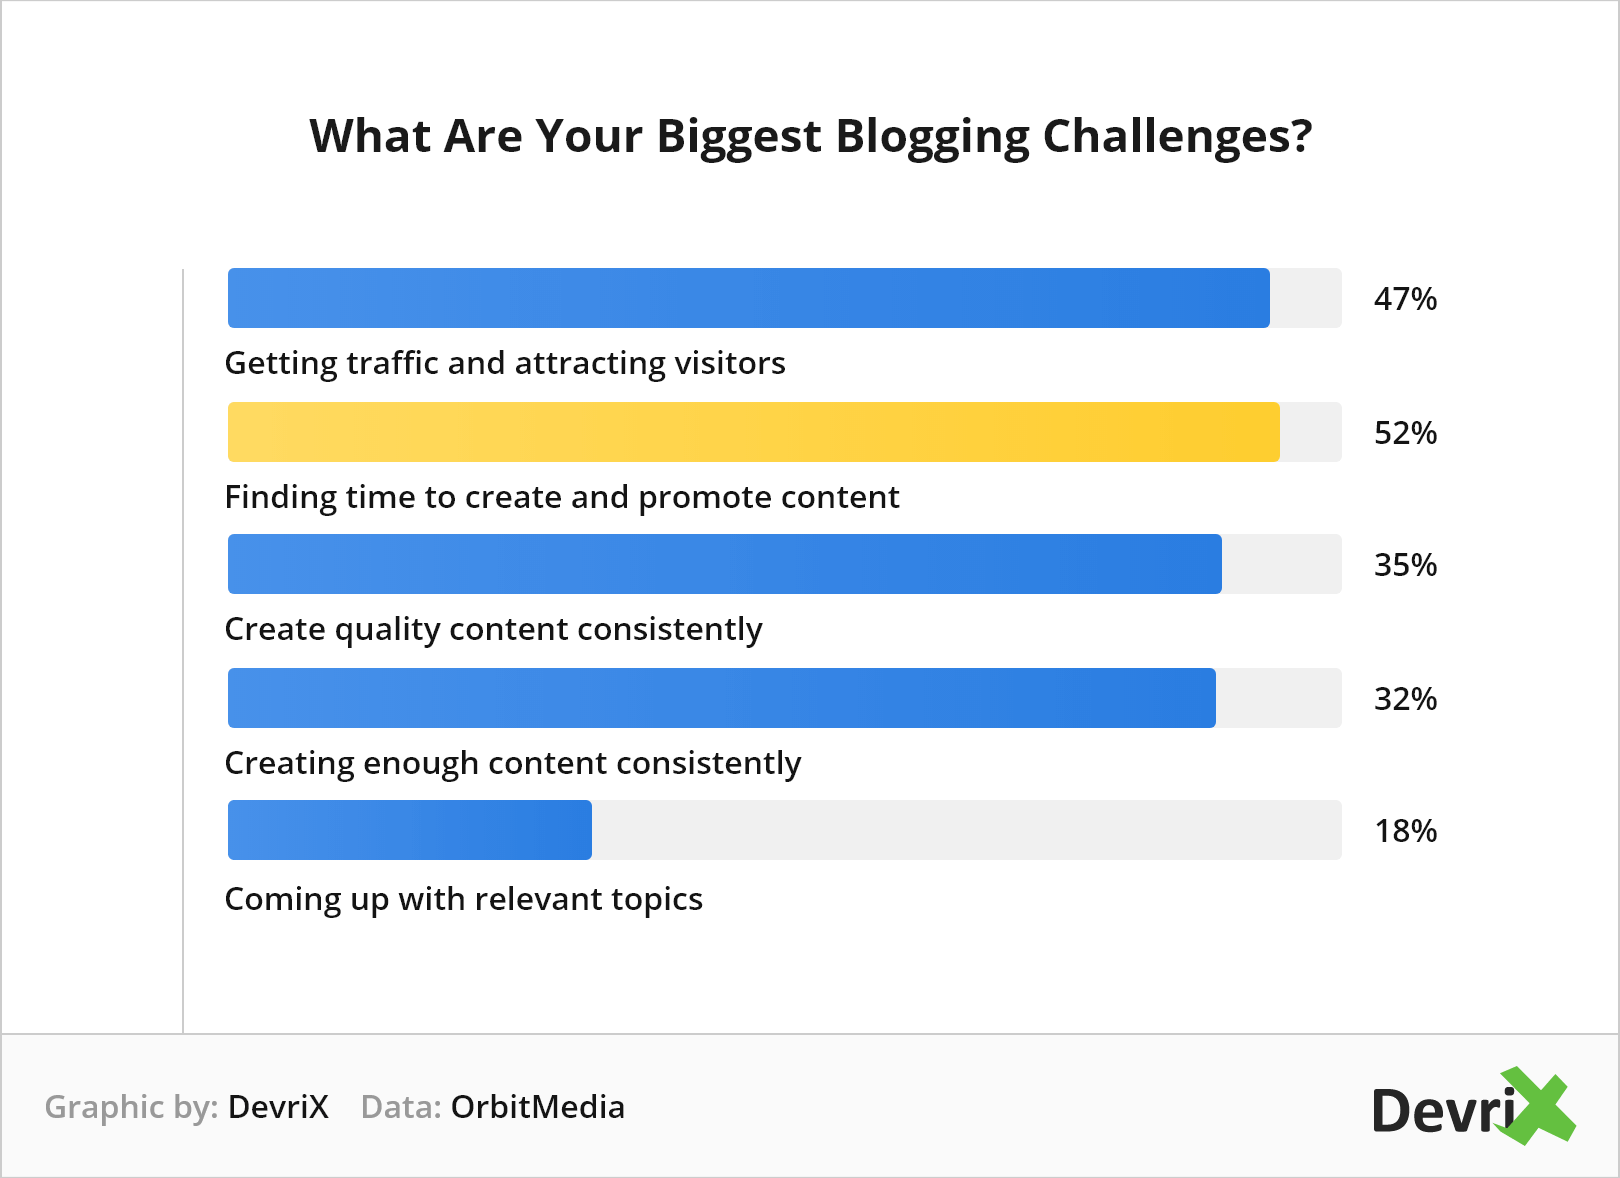 What Are Your Biggest Blogging Challenges